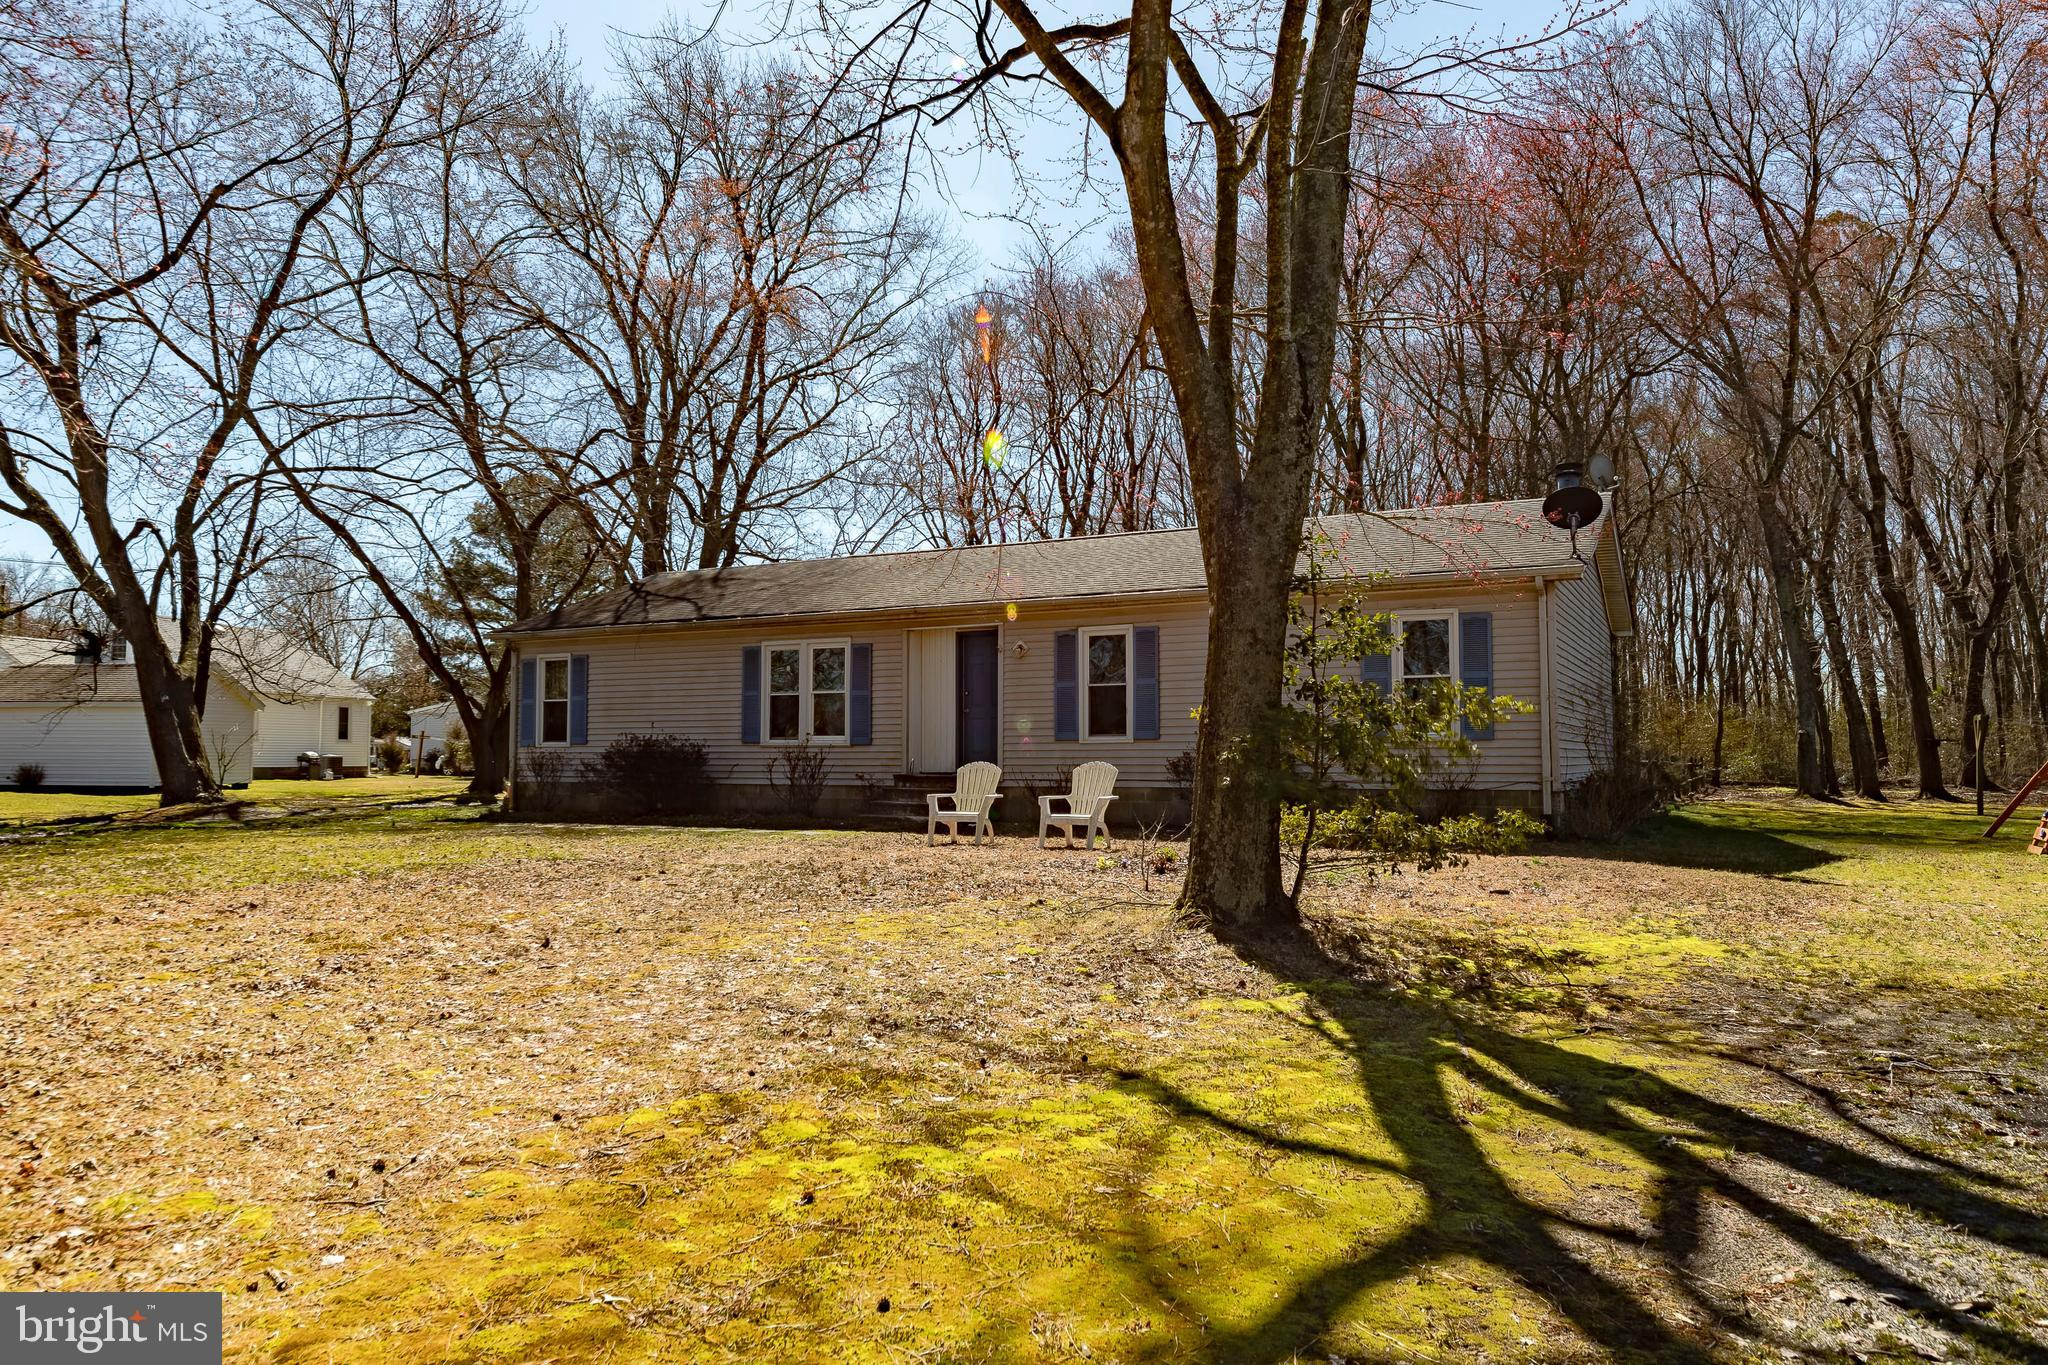 34575 PITTS AVENUE, PITTSVILLE, MD 21850